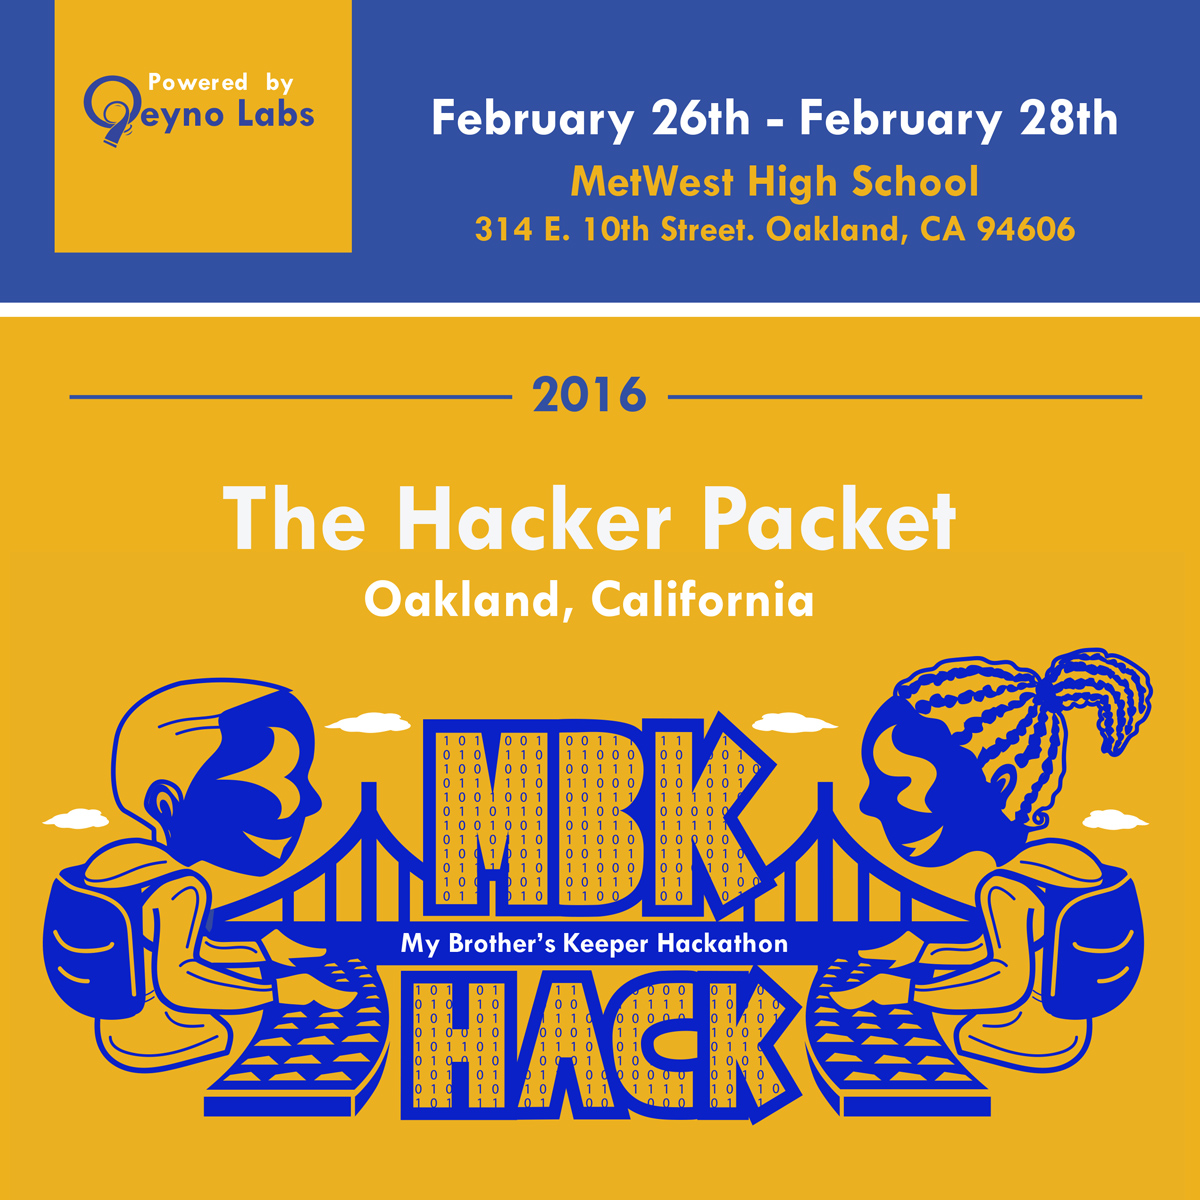 HACKER PACK COVER 2016.jpg